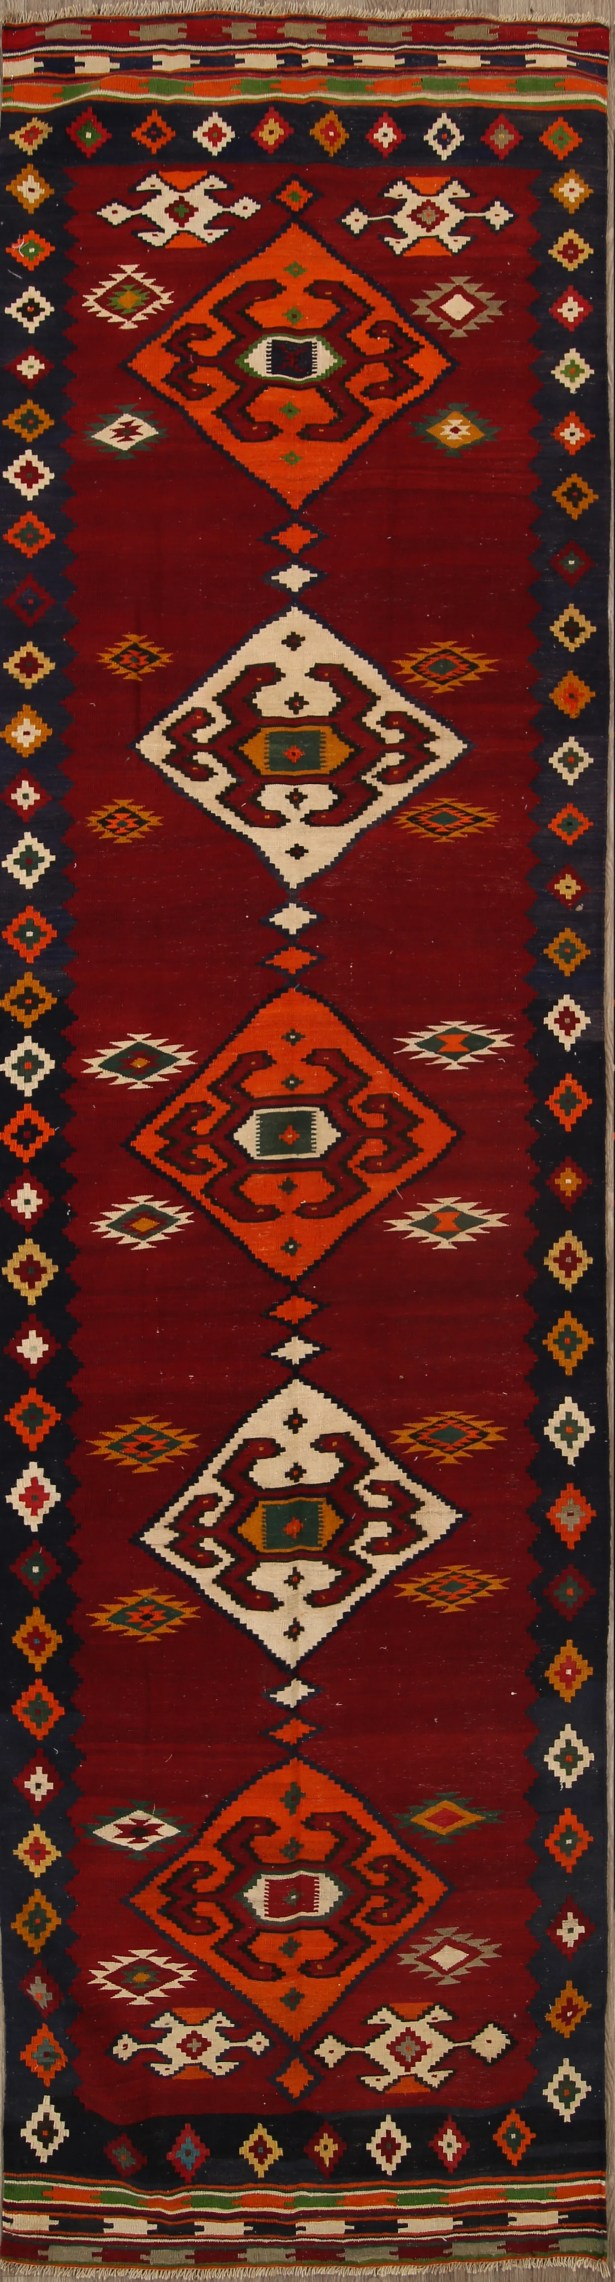 One-of-a-Kind Kilim Shiraz Vintage Persian Traditional Palace Hand-Knotted 4' x 15'2